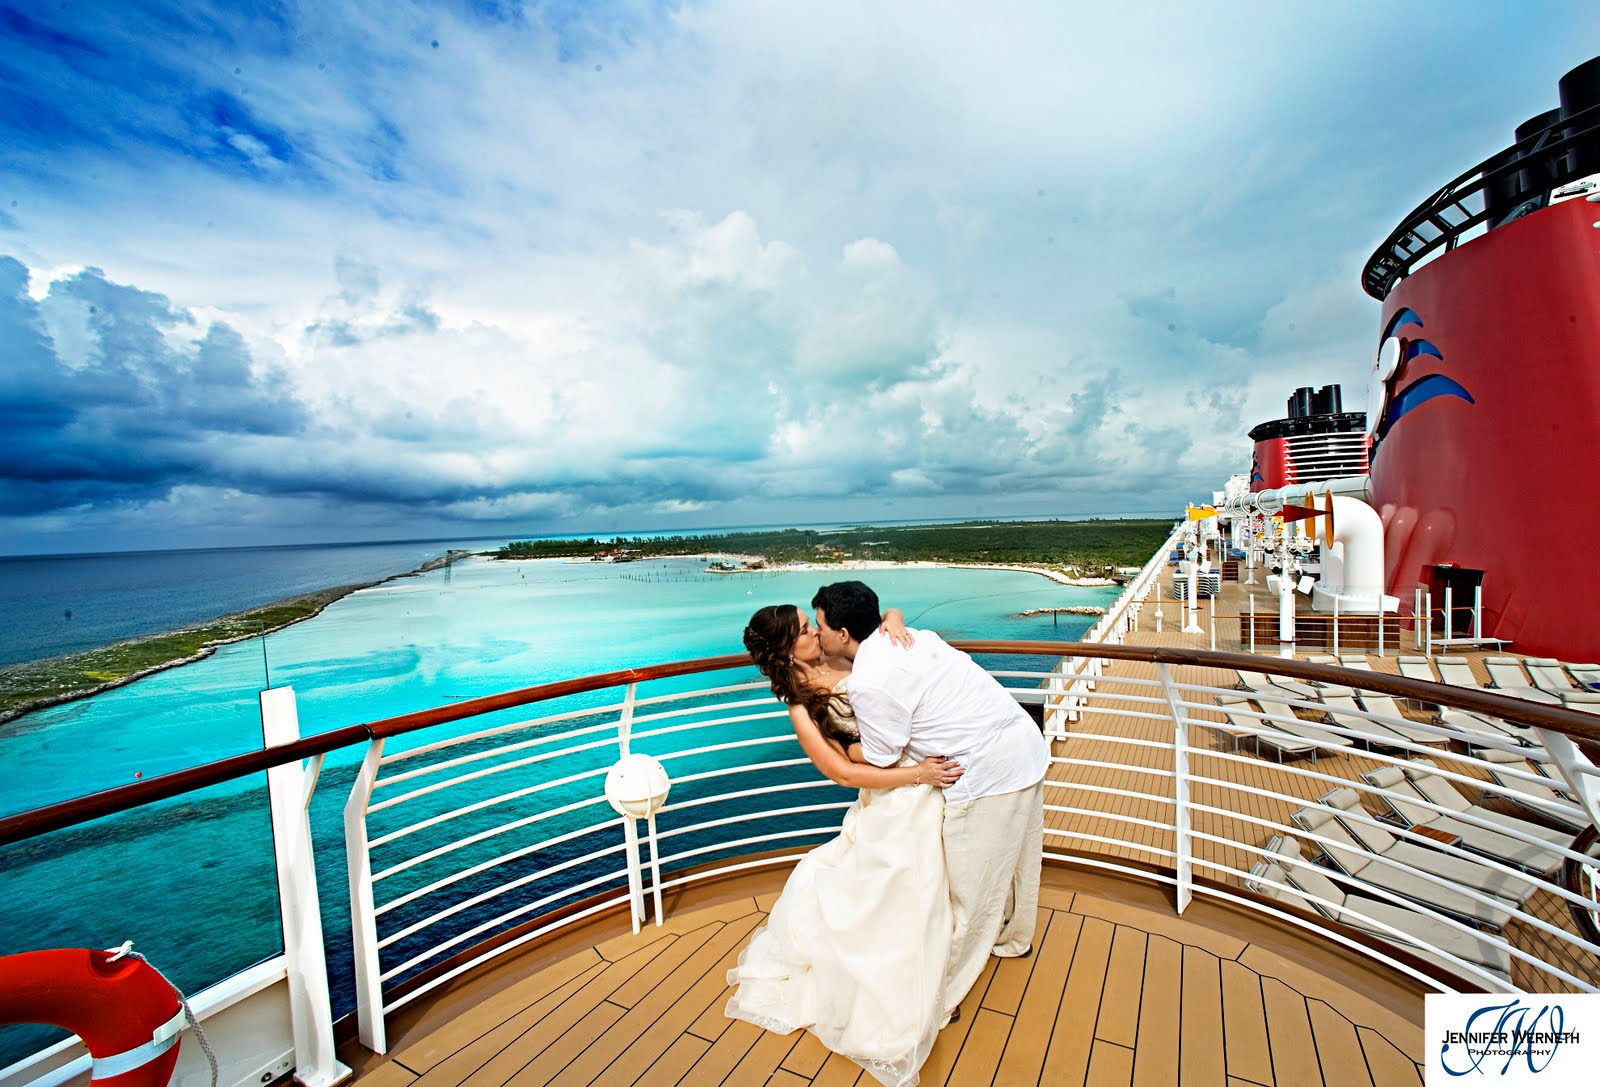 rachael georges disney cruise wedding on disney dream wedding photography jennifer werneth photography - Cruise Ship Photographer